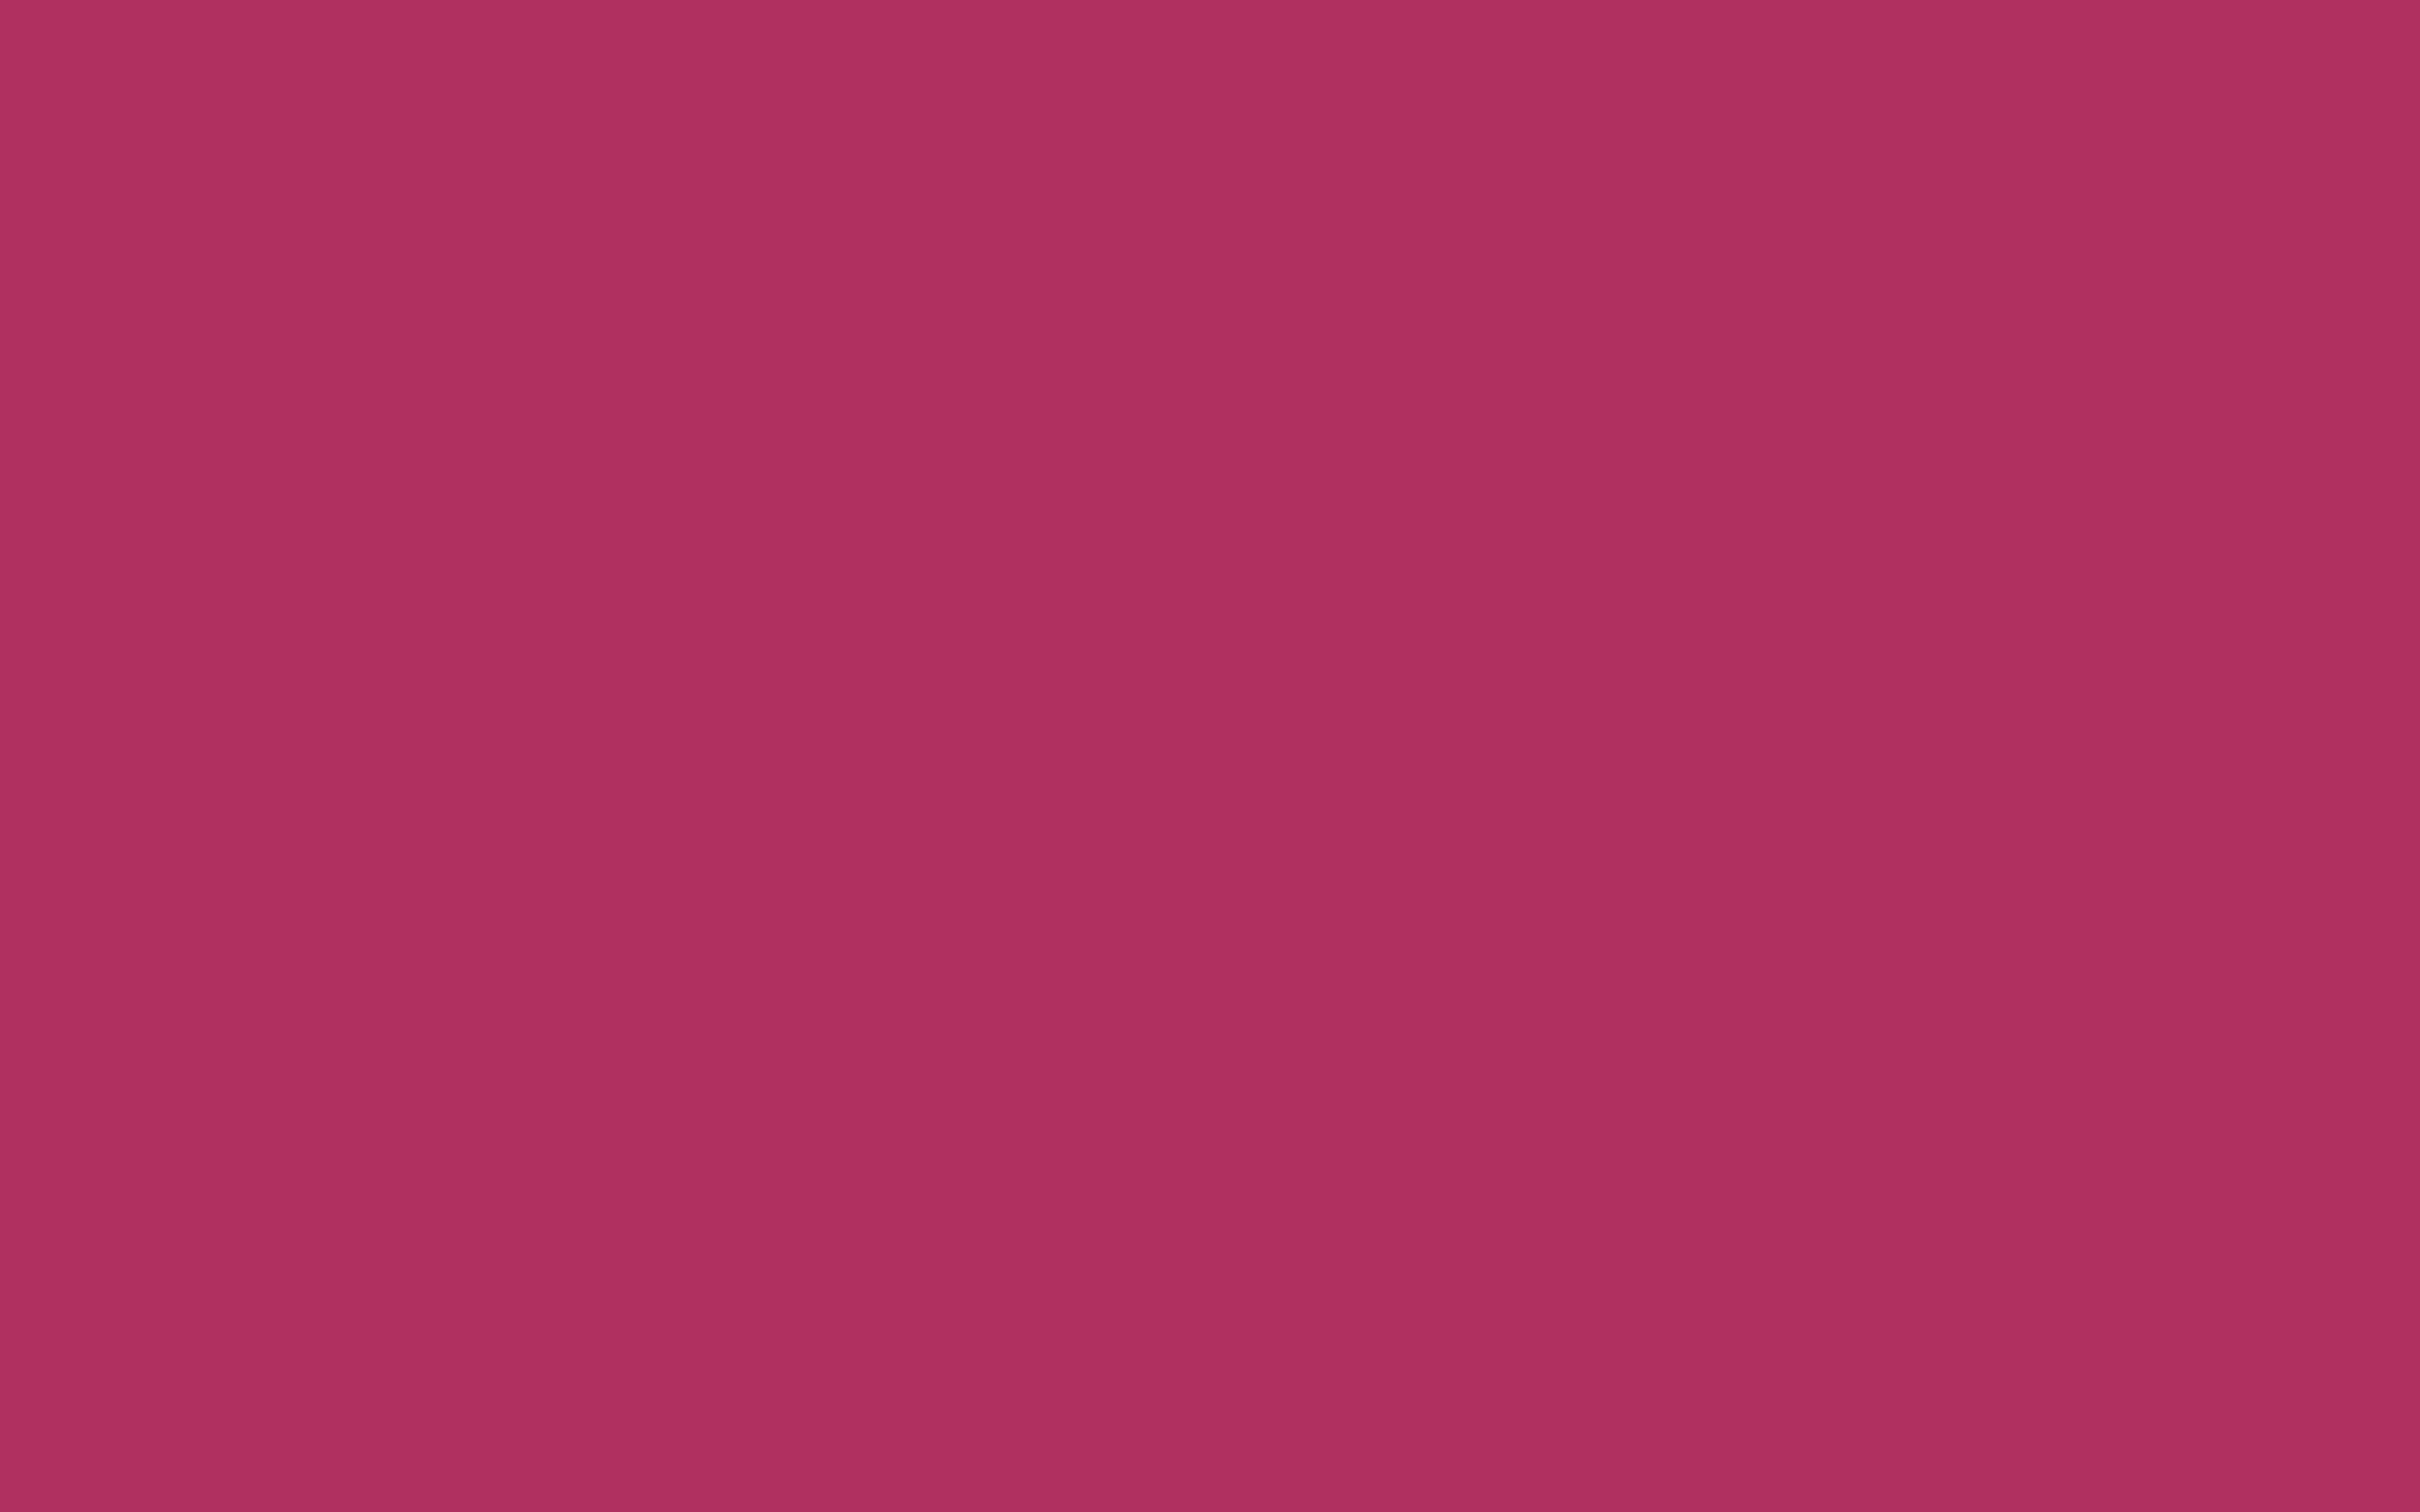 2560x1600 Maroon X11 Gui Solid Color Background